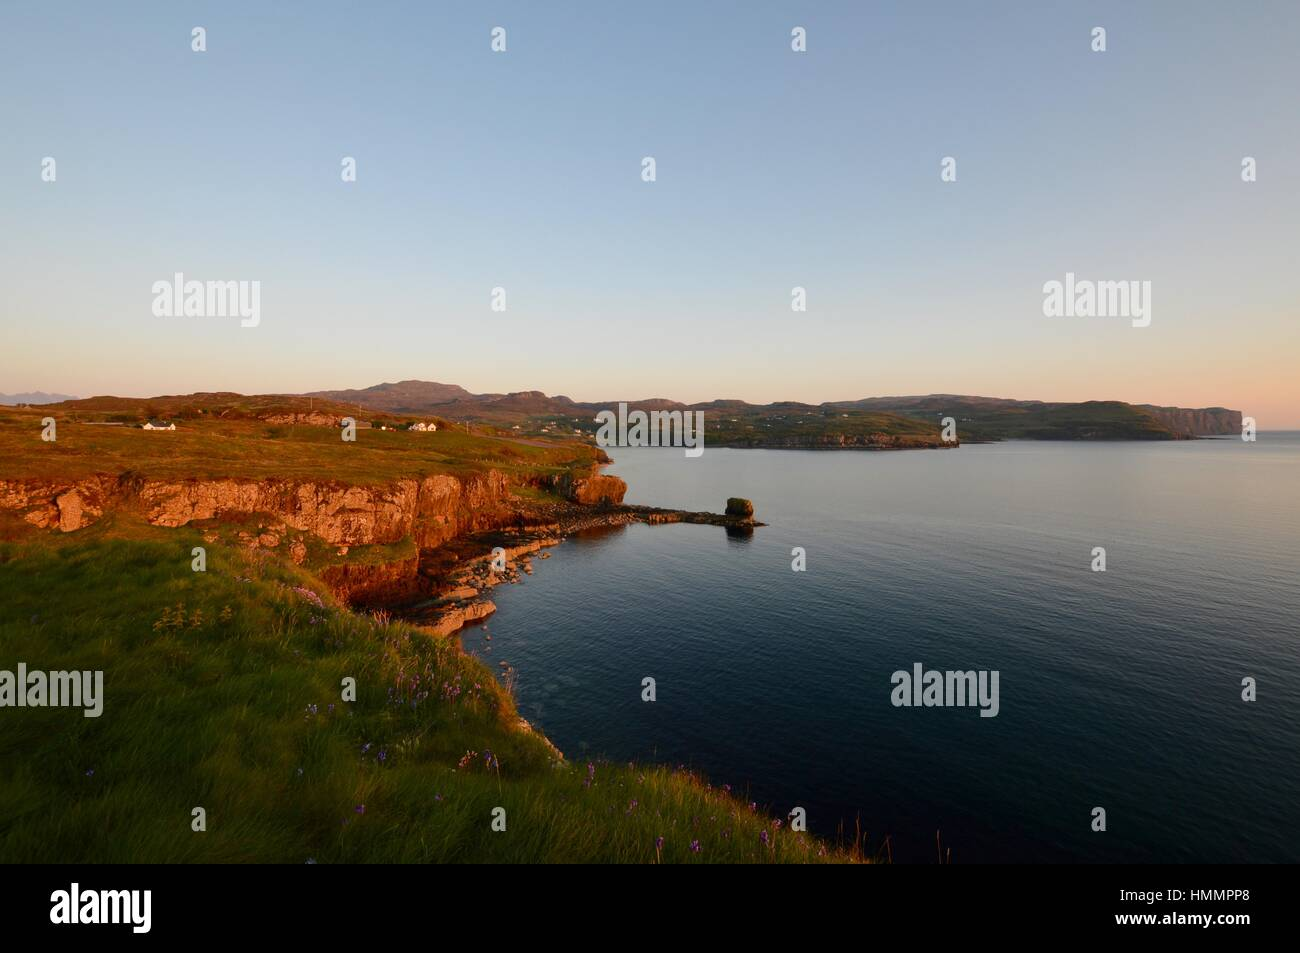 Sunset over Fiskavaig from Ardtreck Point. Stock Photo